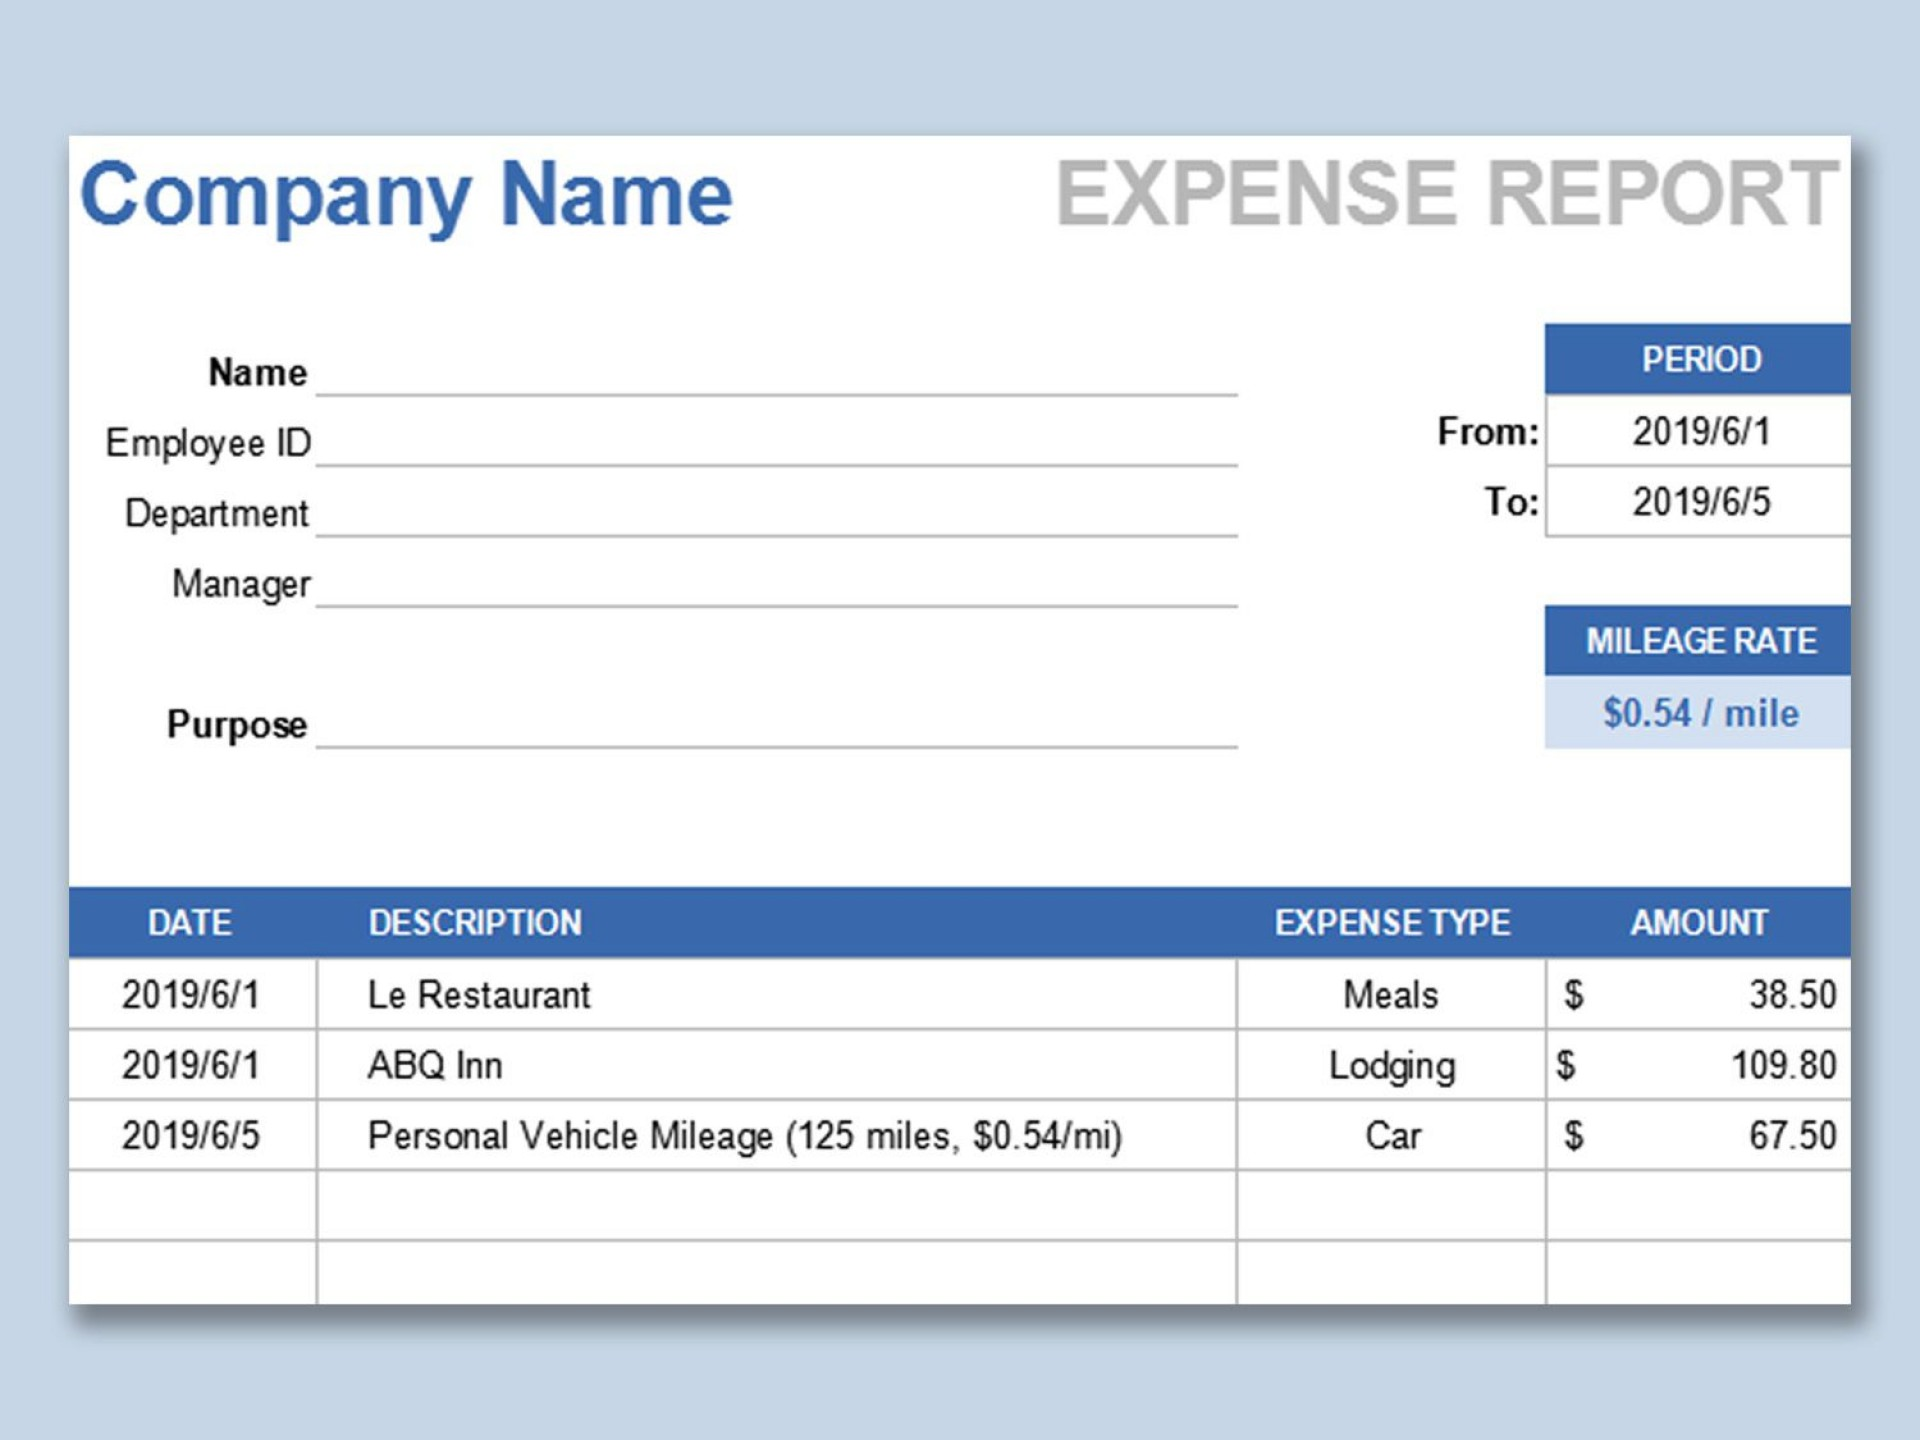 002 Phenomenal Expense Report Template Free High Def  Pdf Excel Download1920